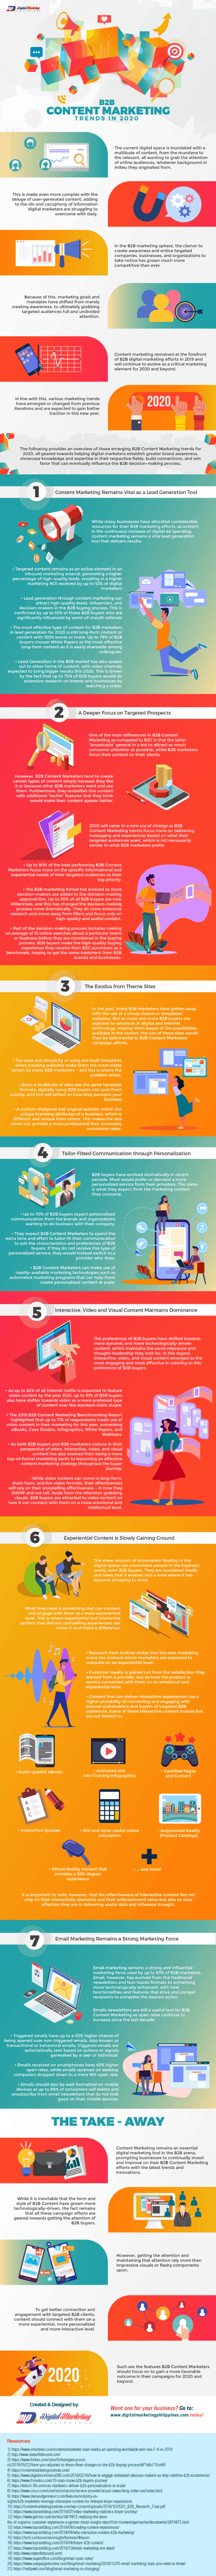 Step back and take a wider view of the B2B content marketing trends for 2020 in this great infographic!